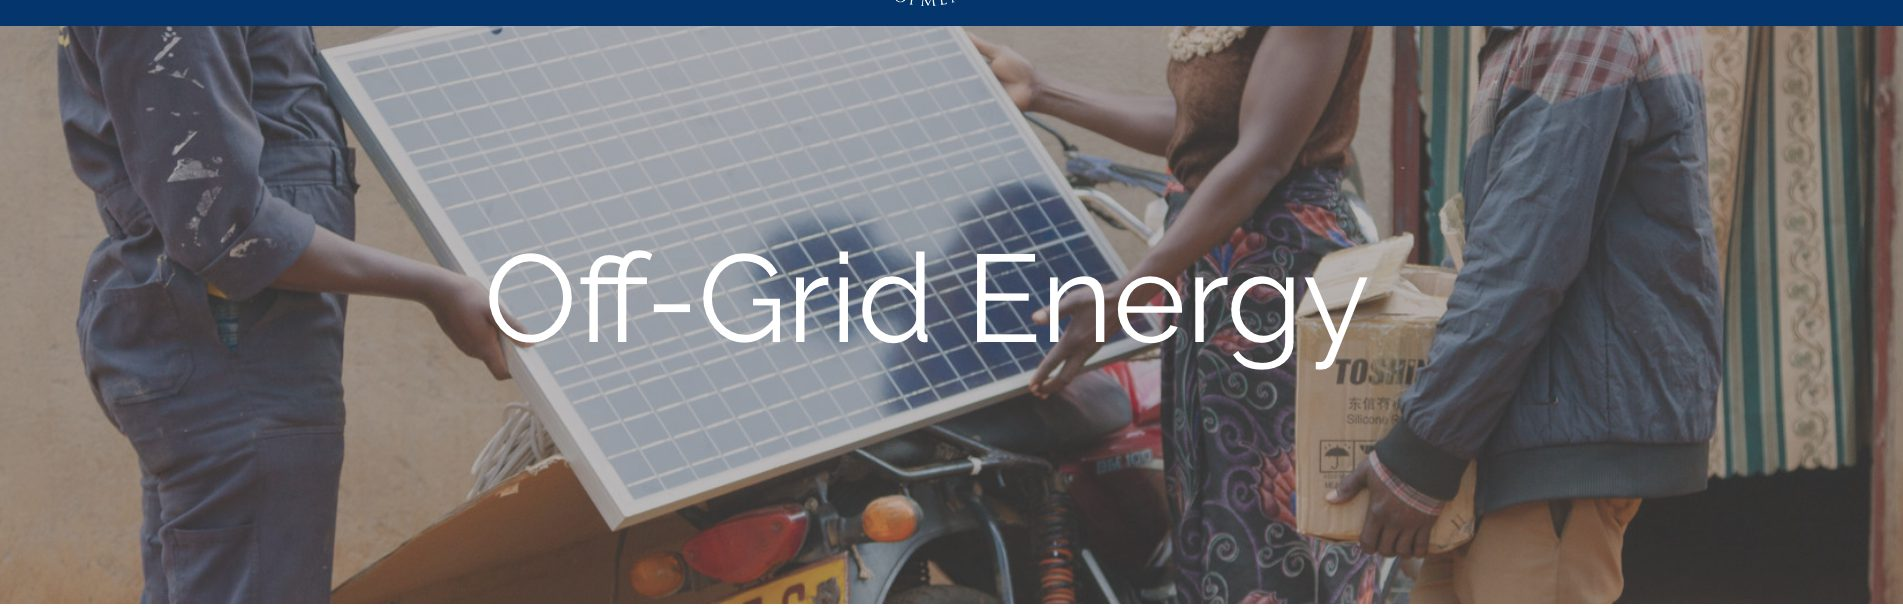 USADF-All On Nigeria Off-Grid Energy Challenge